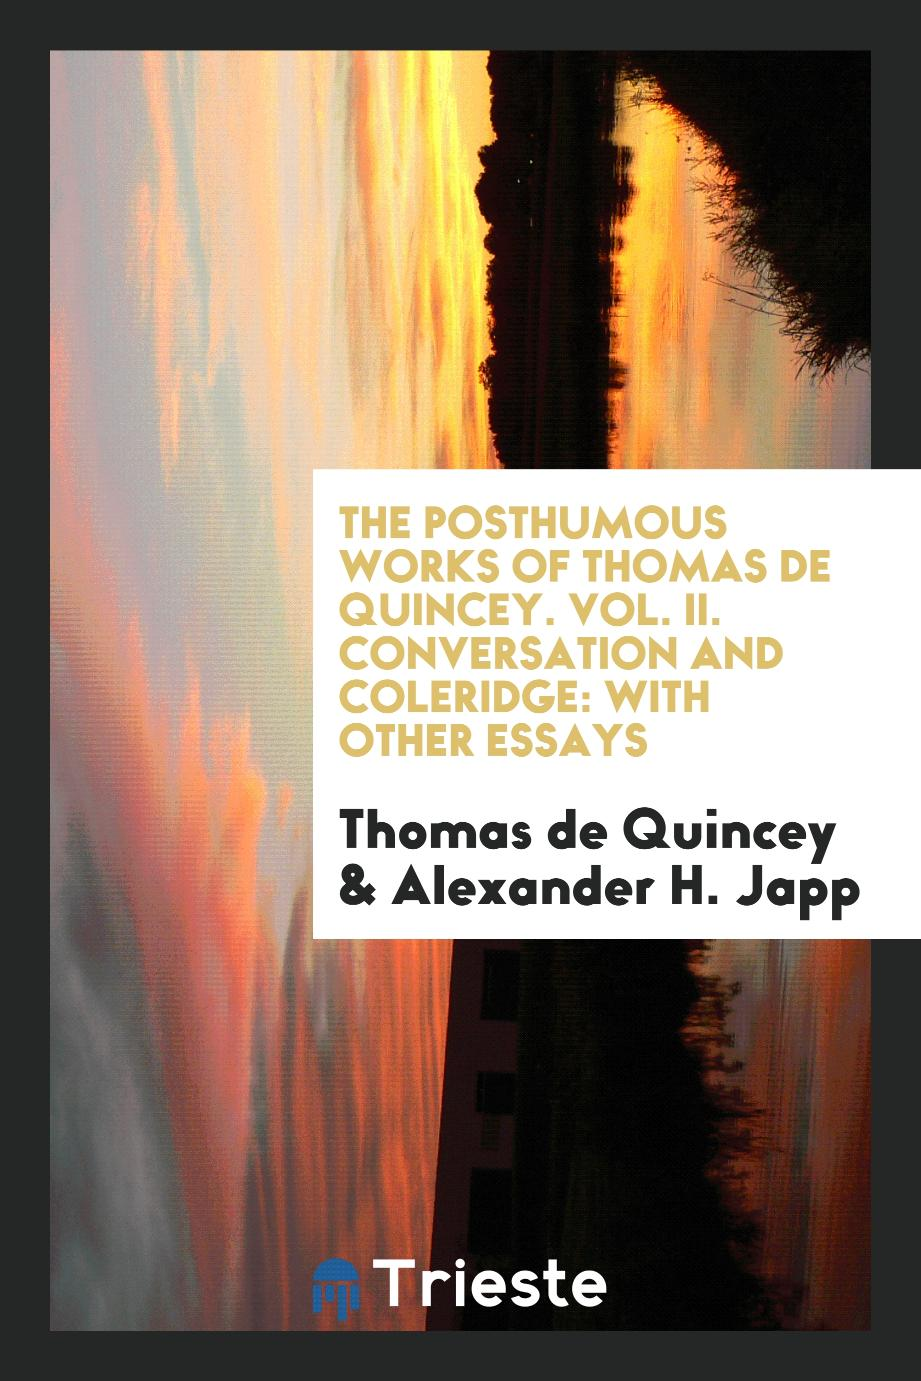 The Posthumous Works of Thomas de Quincey. Vol. II. Conversation and Coleridge: With Other Essays